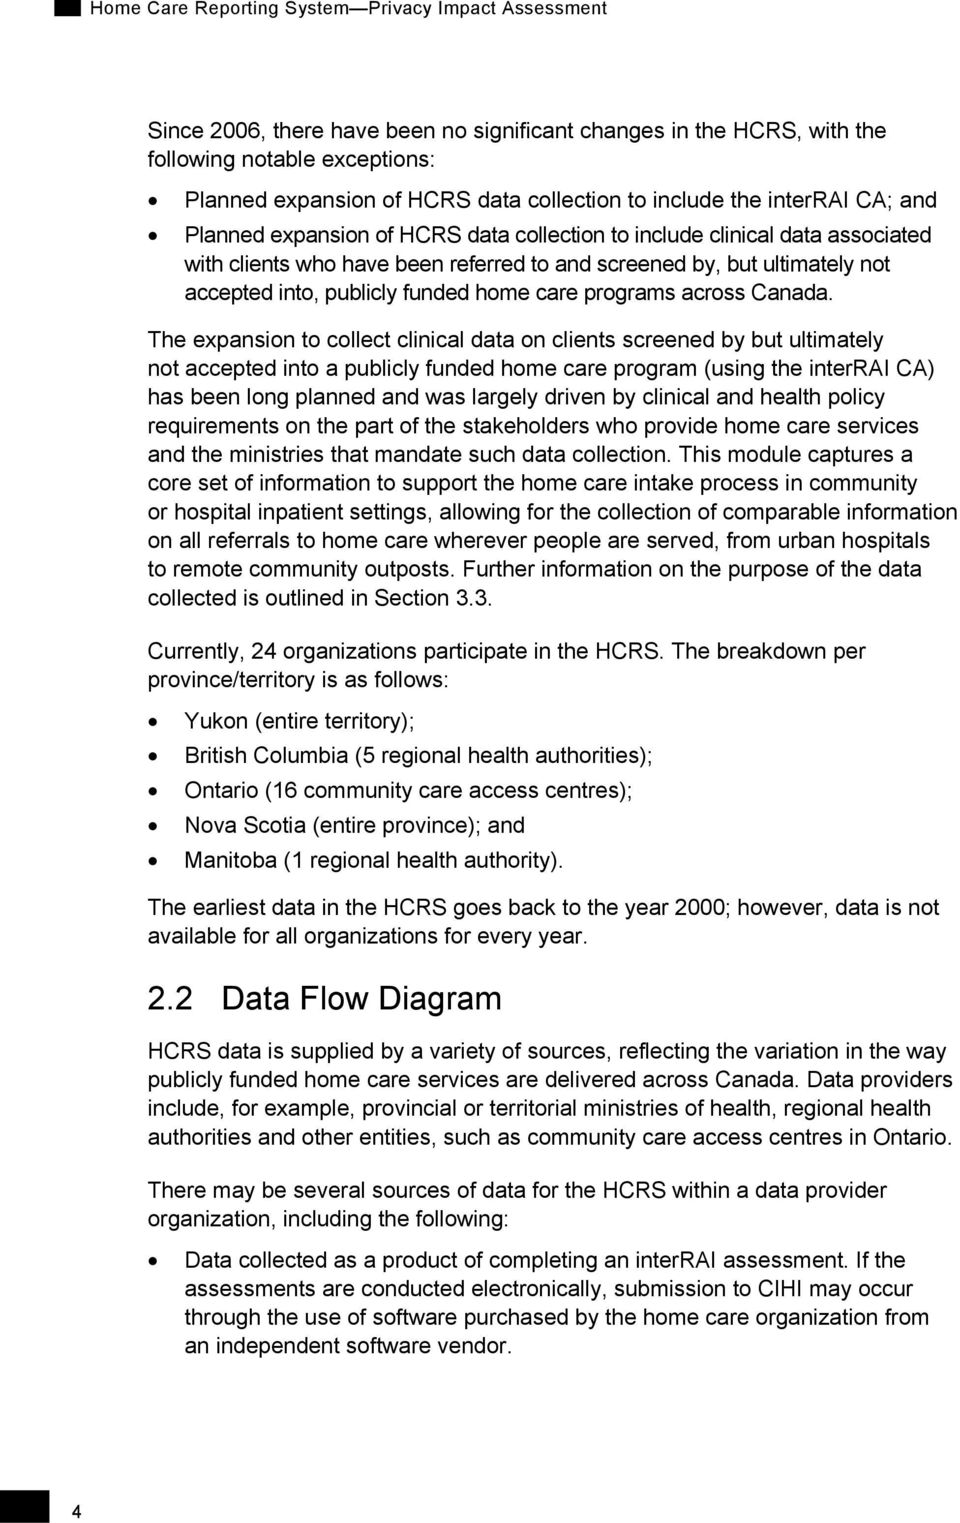 The expansion to collect clinical data on clients screened by but ultimately not accepted into a publicly funded home care program (using the interrai CA) has been long planned and was largely driven